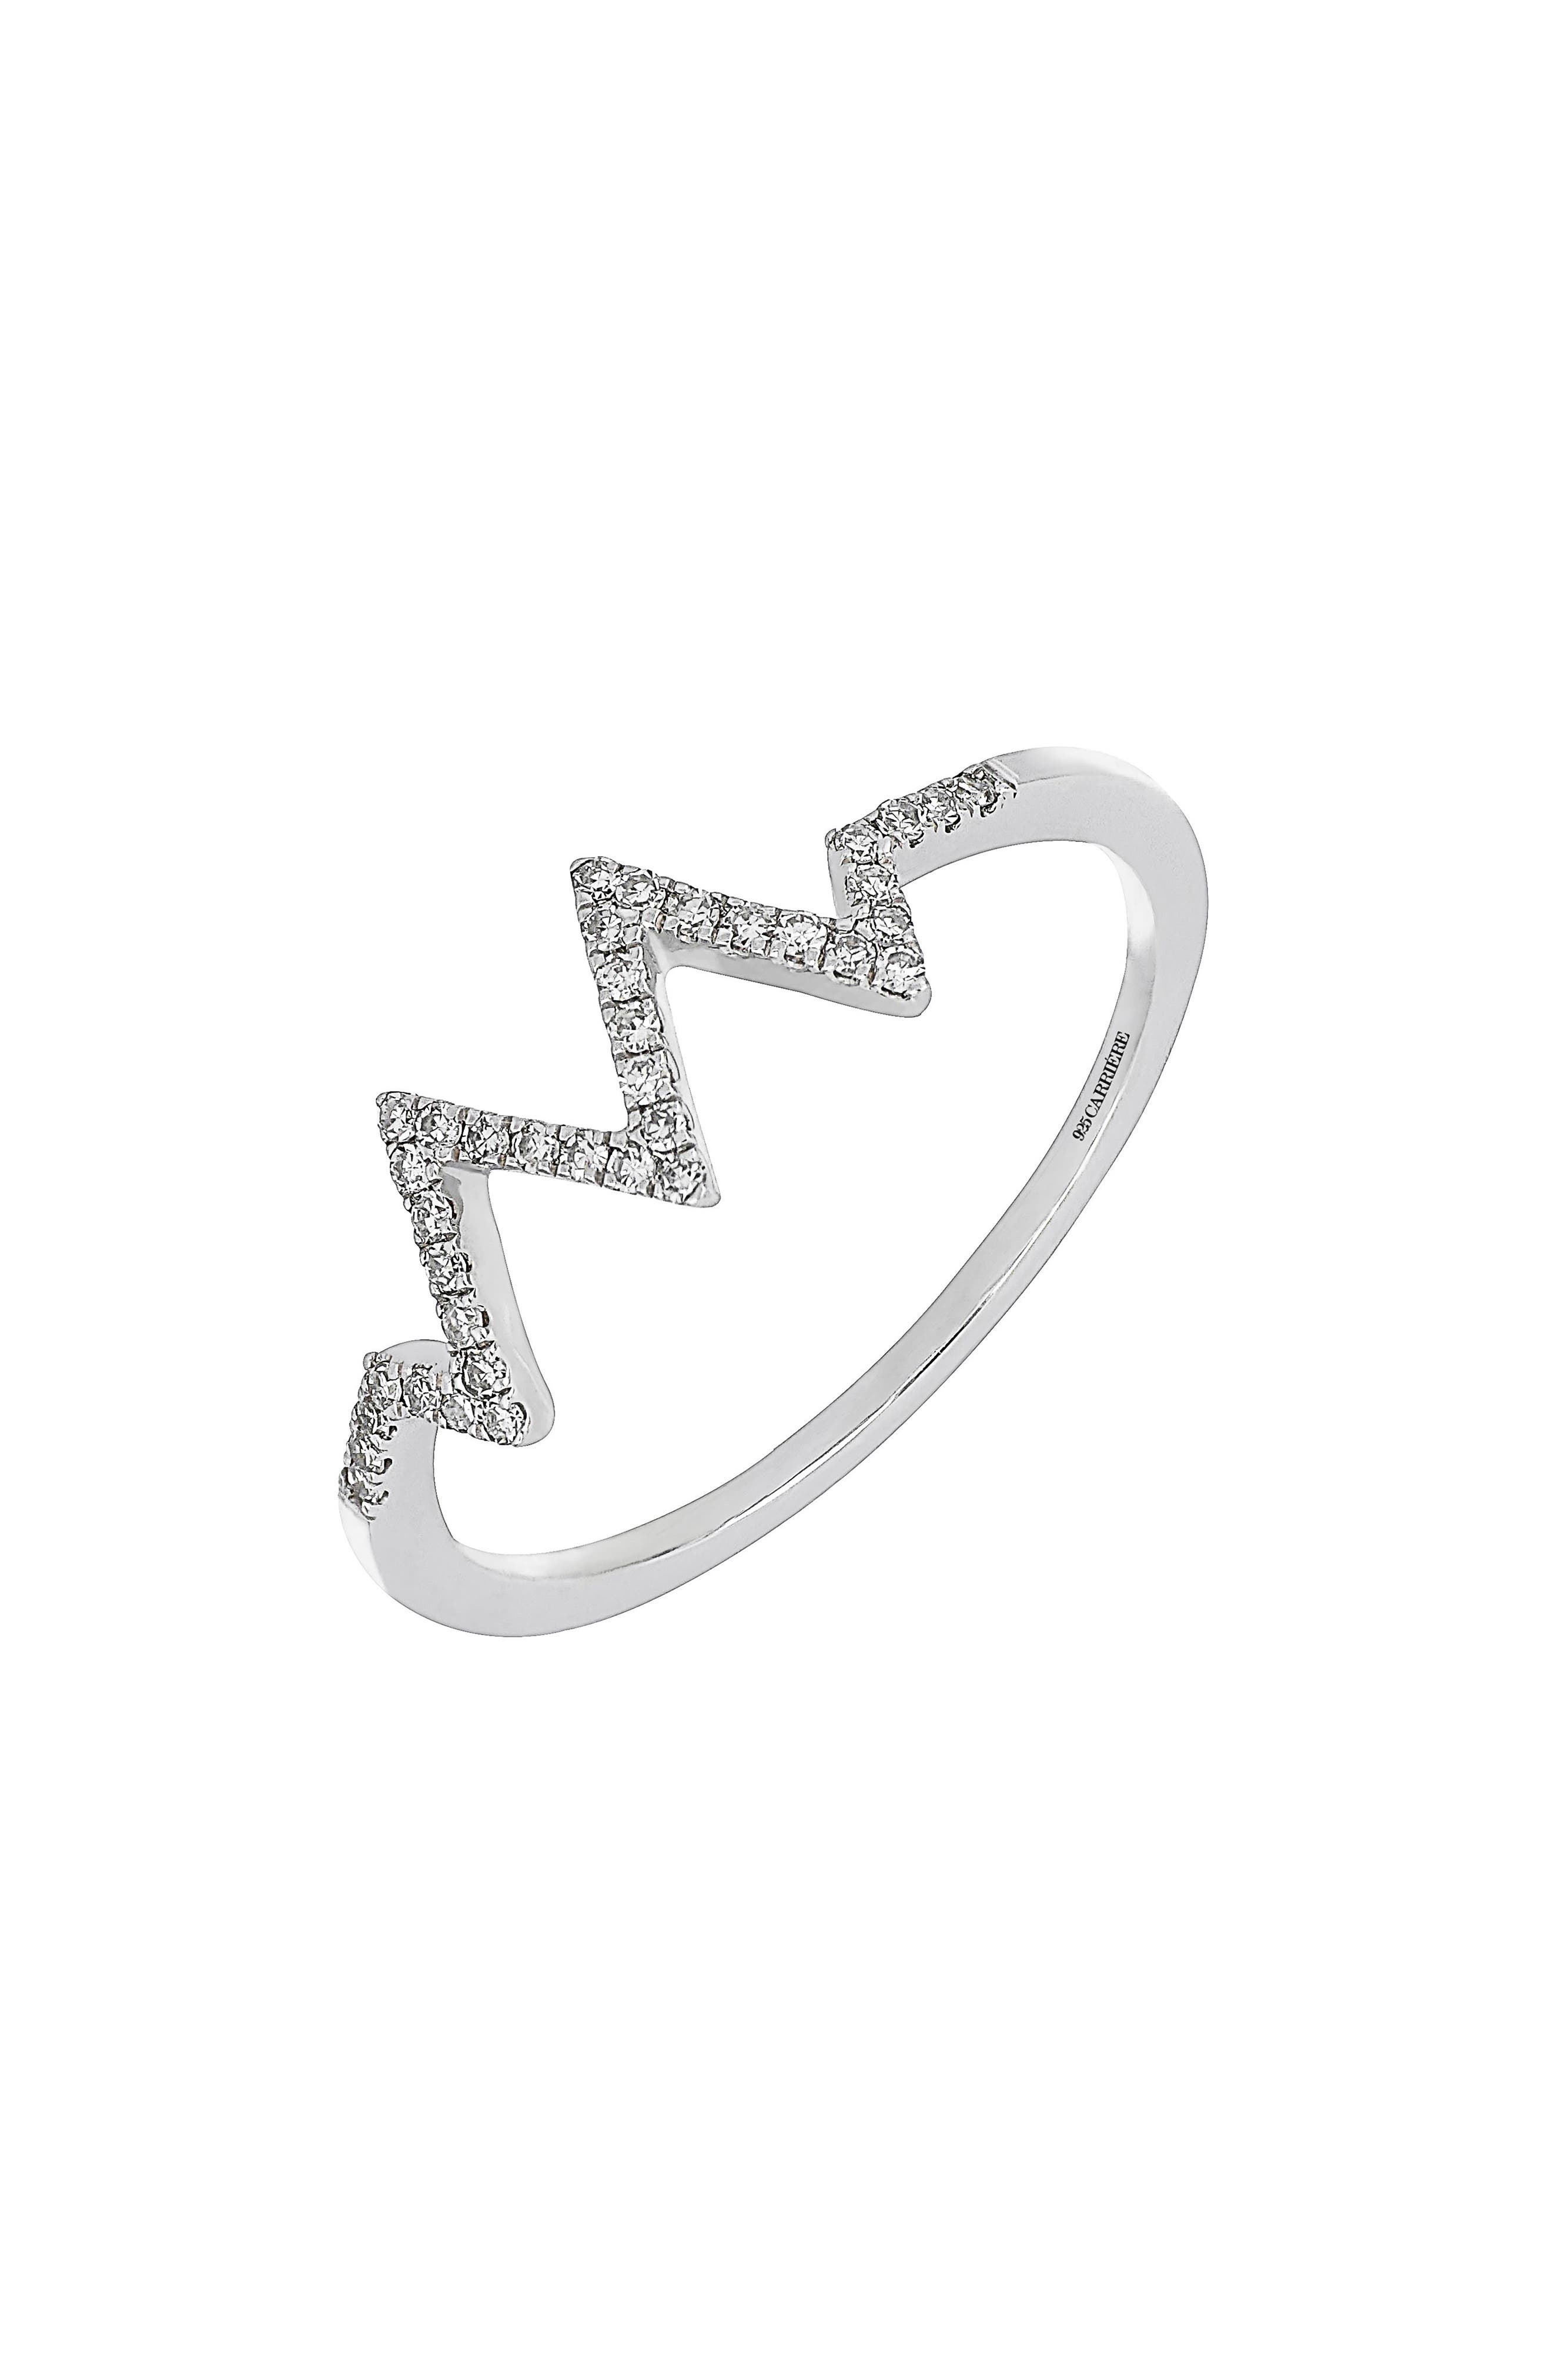 Alternate Image 1 Selected - Carrière Zigzag Diamond Ring (Nordstrom Exclusive)